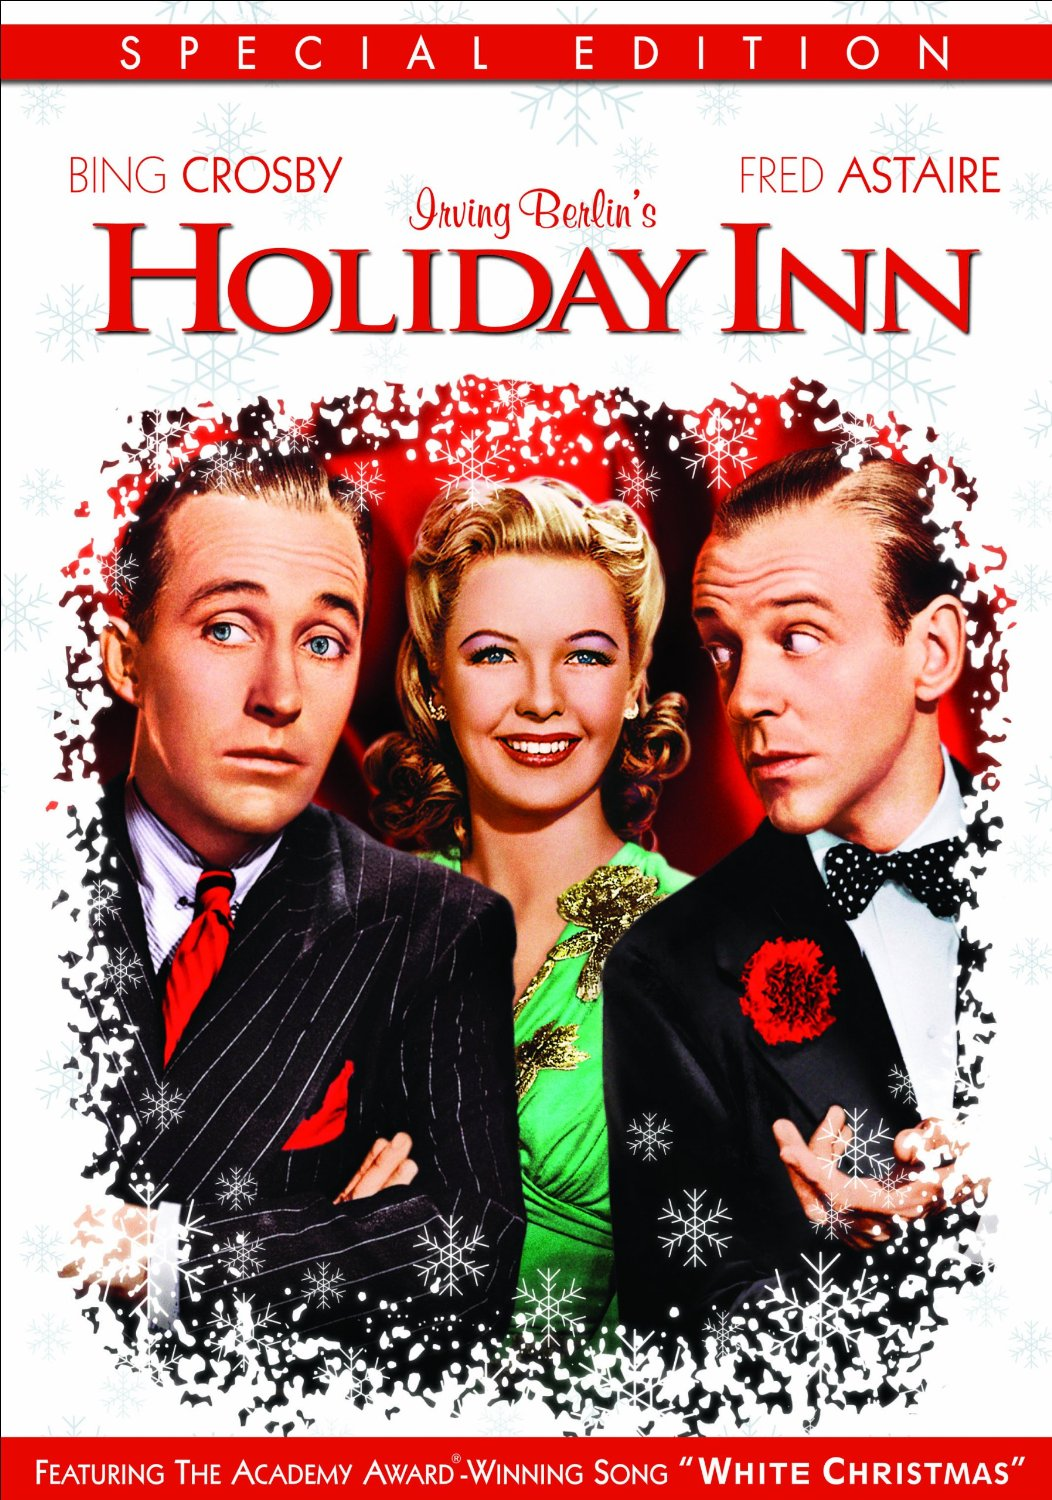 christmas holiday movies inn favorite bing racist classic dvd classics crosby amazon holidays racism marjorie reynolds sexism berlin irving chrismas